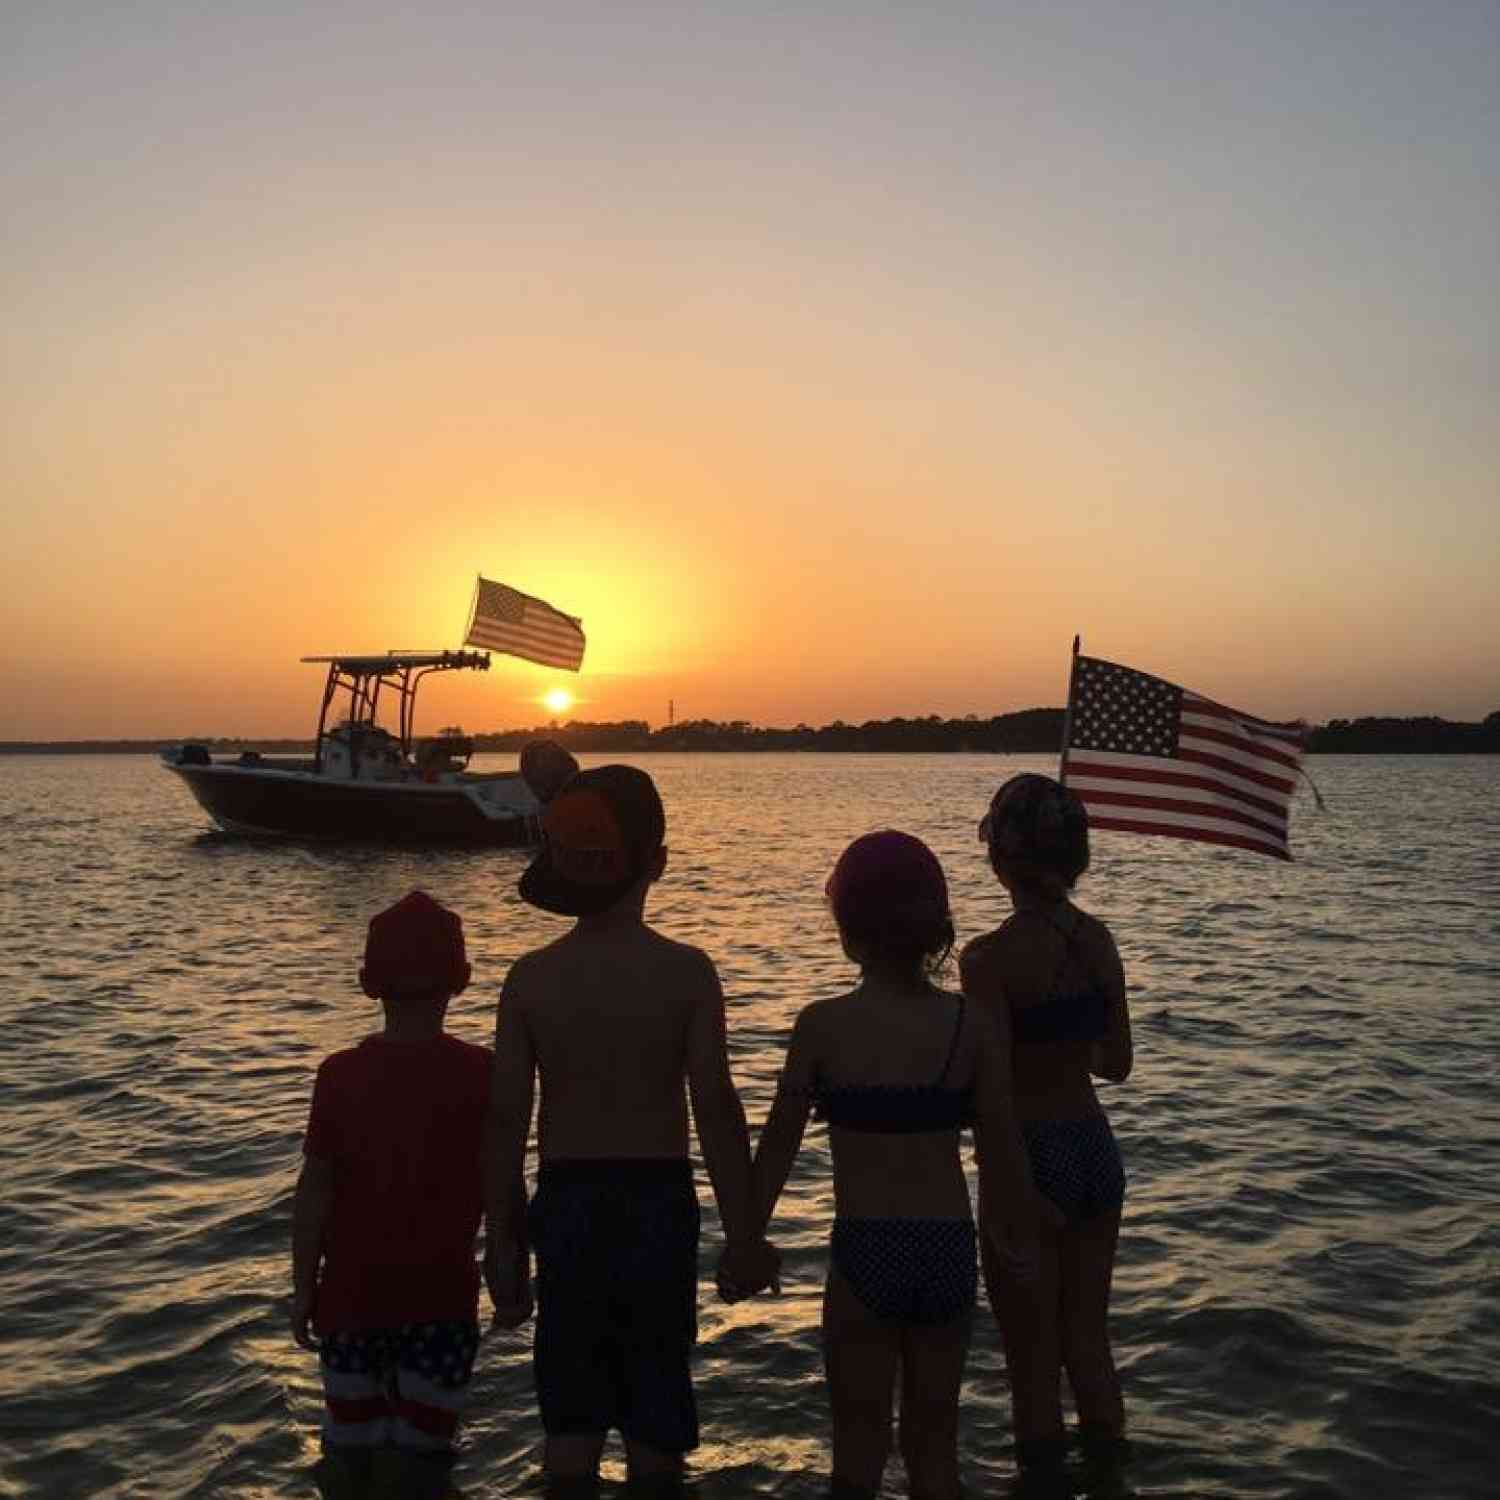 Title: Independence Day - On board their Sportsman Heritage 211 Center Console - Location: Santa Rosa Island, FL. Participating in the Photo Contest #SportsmanSeptember2018